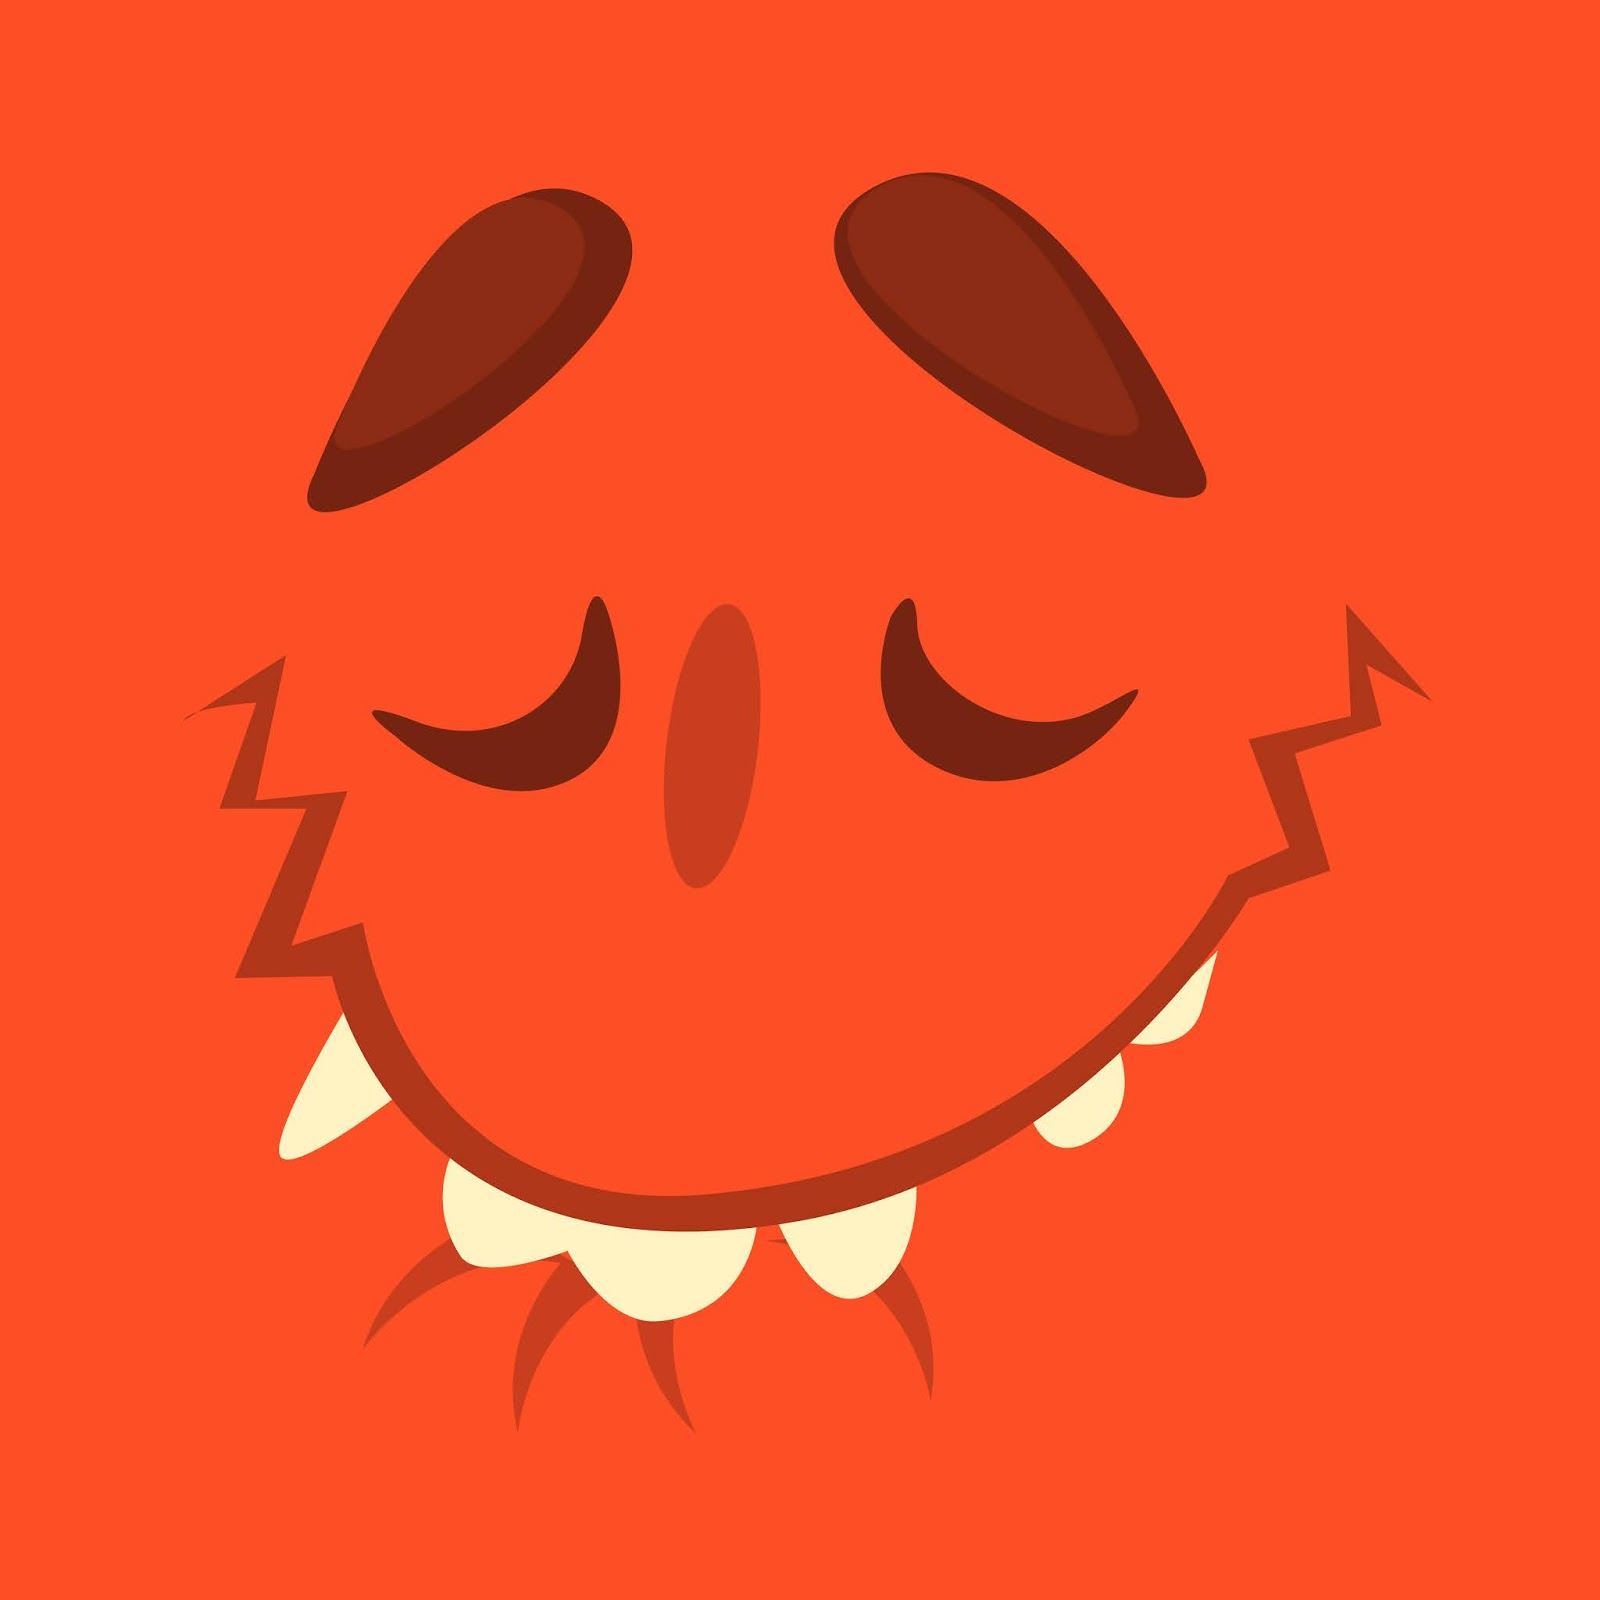 Cartoon Monster Face Avatar Halloween Funny Free Download Vector CDR, AI, EPS and PNG Formats